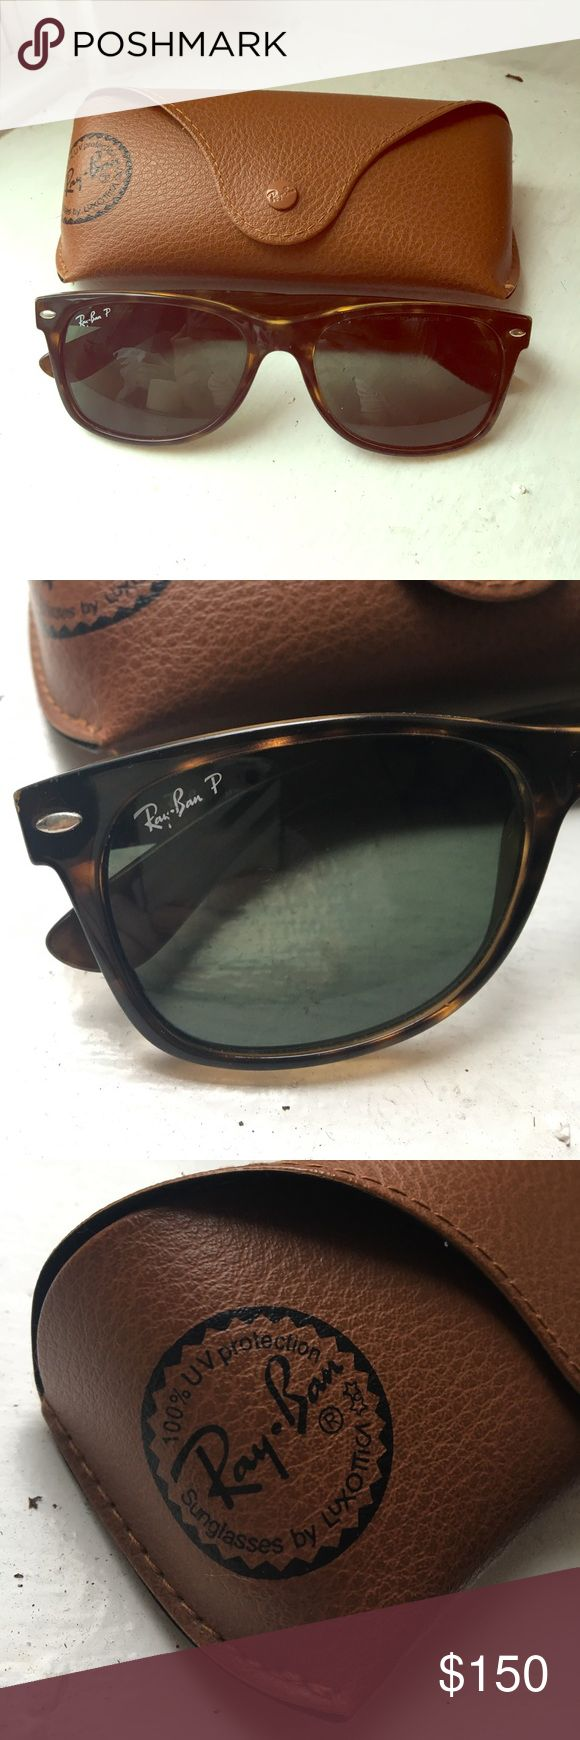 Ray Ban Wayfarer Authentic Ray Ban Wayfarer sunglasses. Polarized. Comes with case. Very minor scratches on lens (attempted to capture pictures) but not noticeable unless looking for them. Ray-Ban Accessories Sunglasses